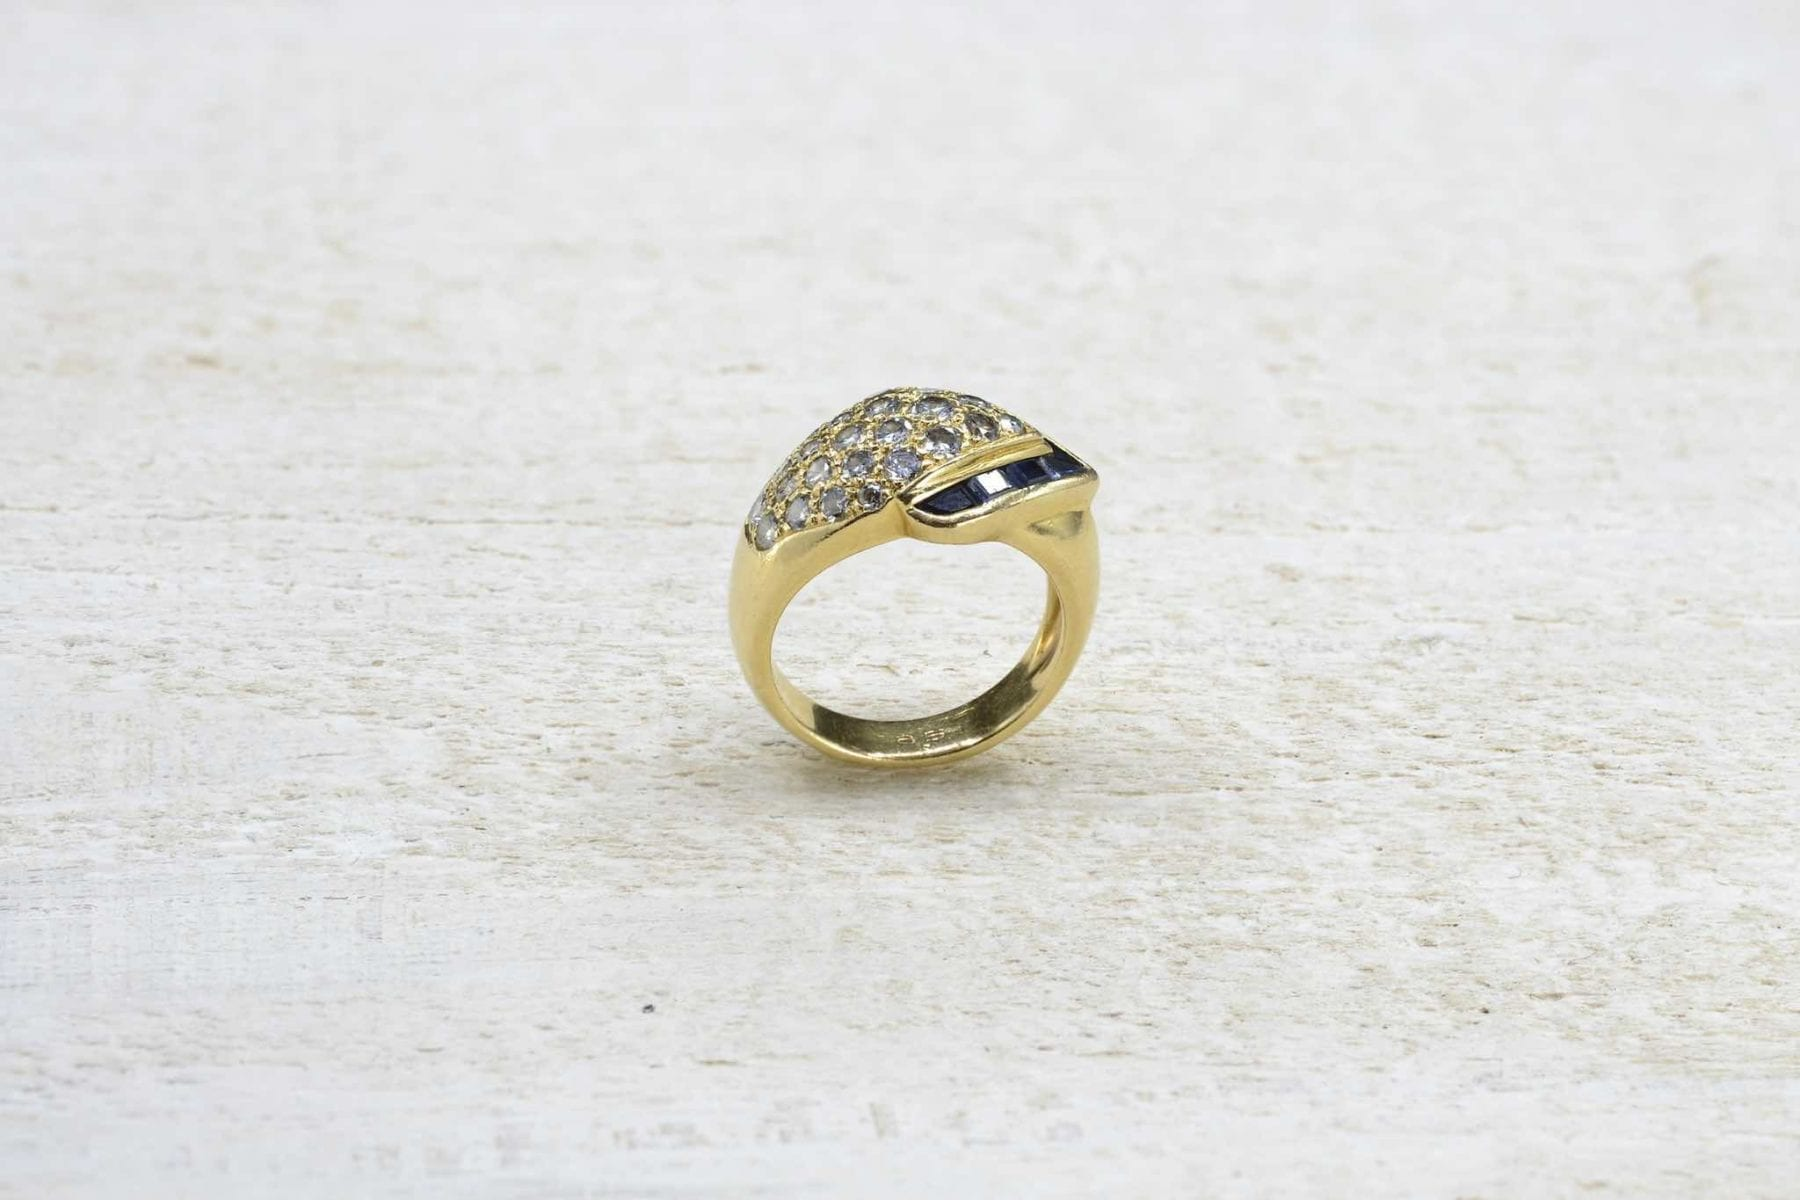 Vintage sapphire ring